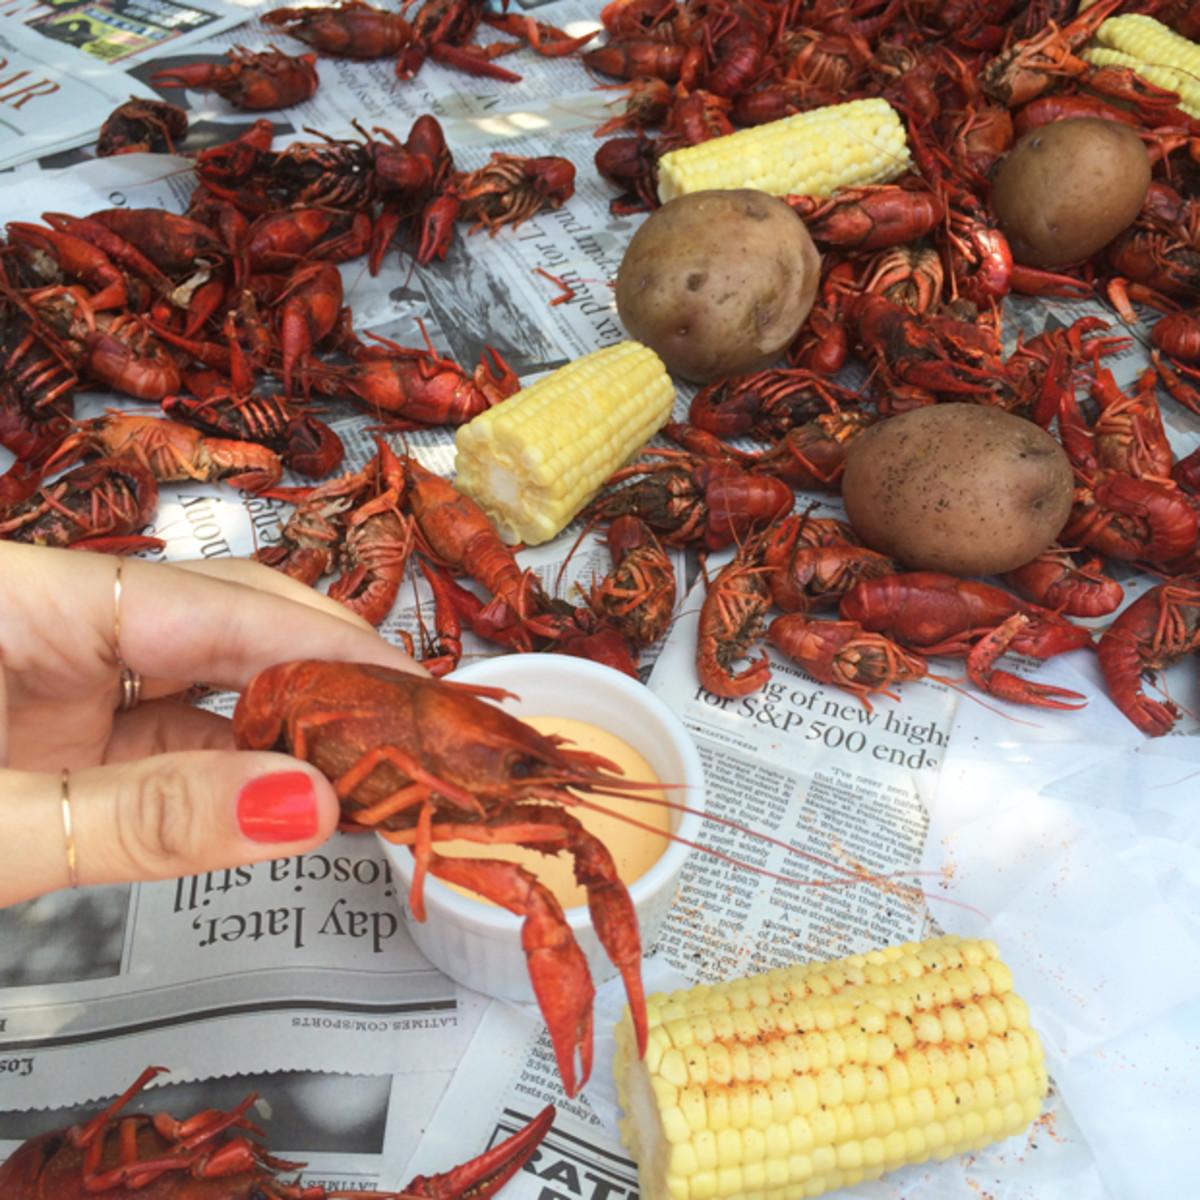 {Crawfish party shoot for my next book}